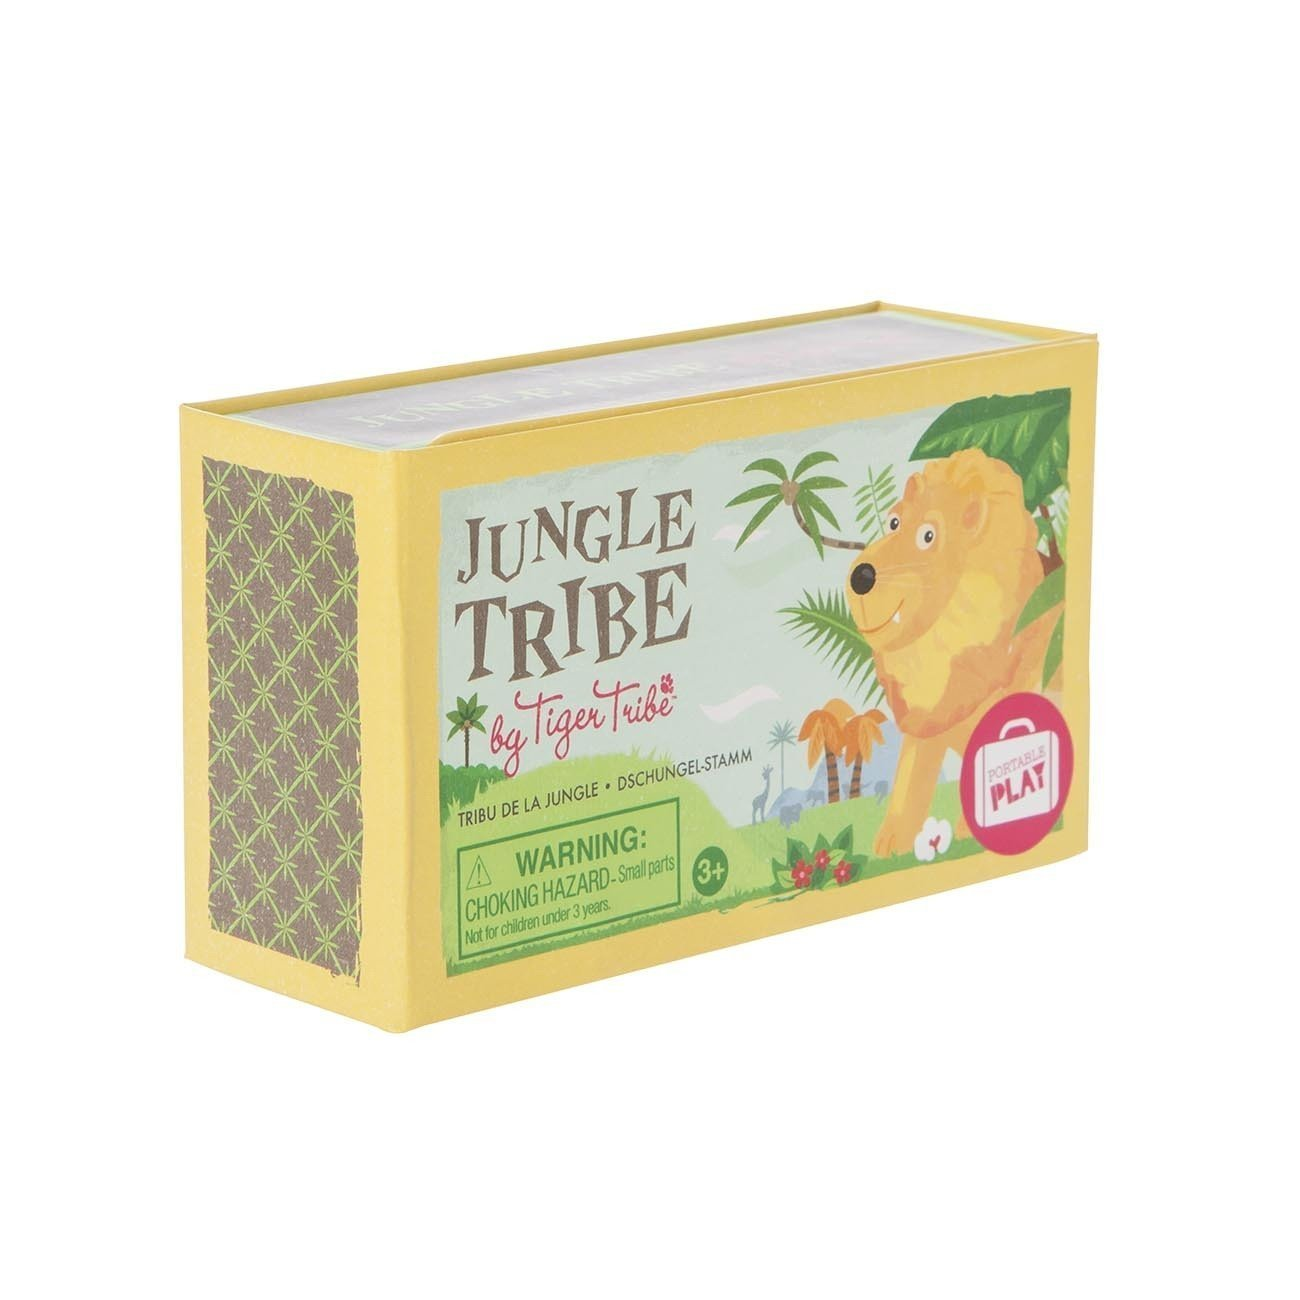 Jungle Tribe - Tiger Tribe - Hugs For Kids